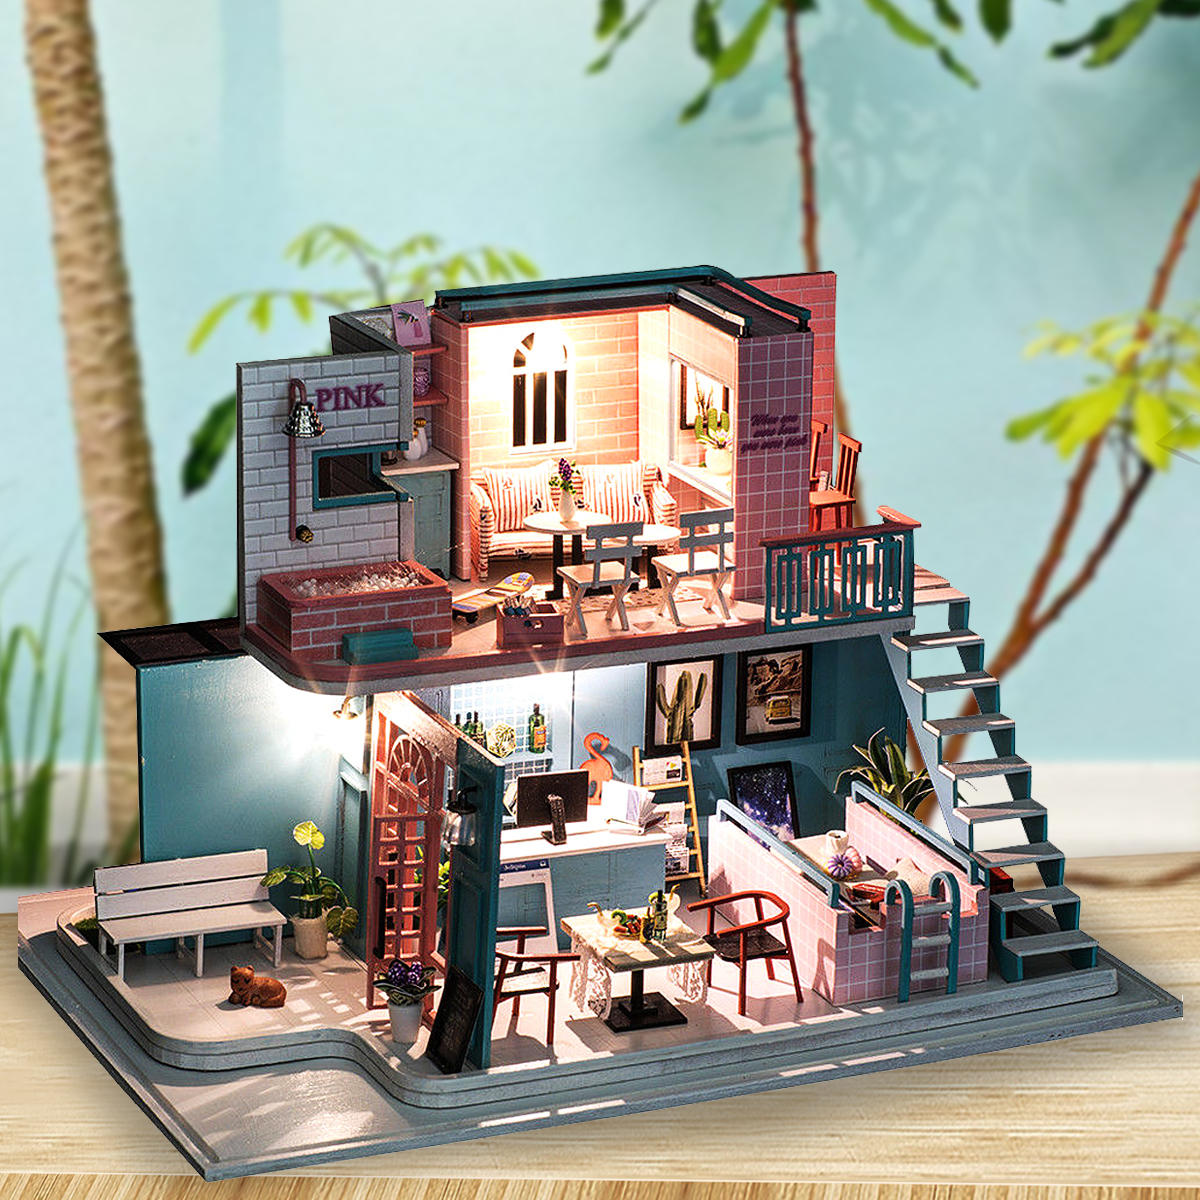 Magnificent Handmade 3D Wooden Miniatures Doll House Pink Cafe Dollhouse Furniture Diy Miniature Toys For Girls Birthday Gifts Interior Design Ideas Tzicisoteloinfo